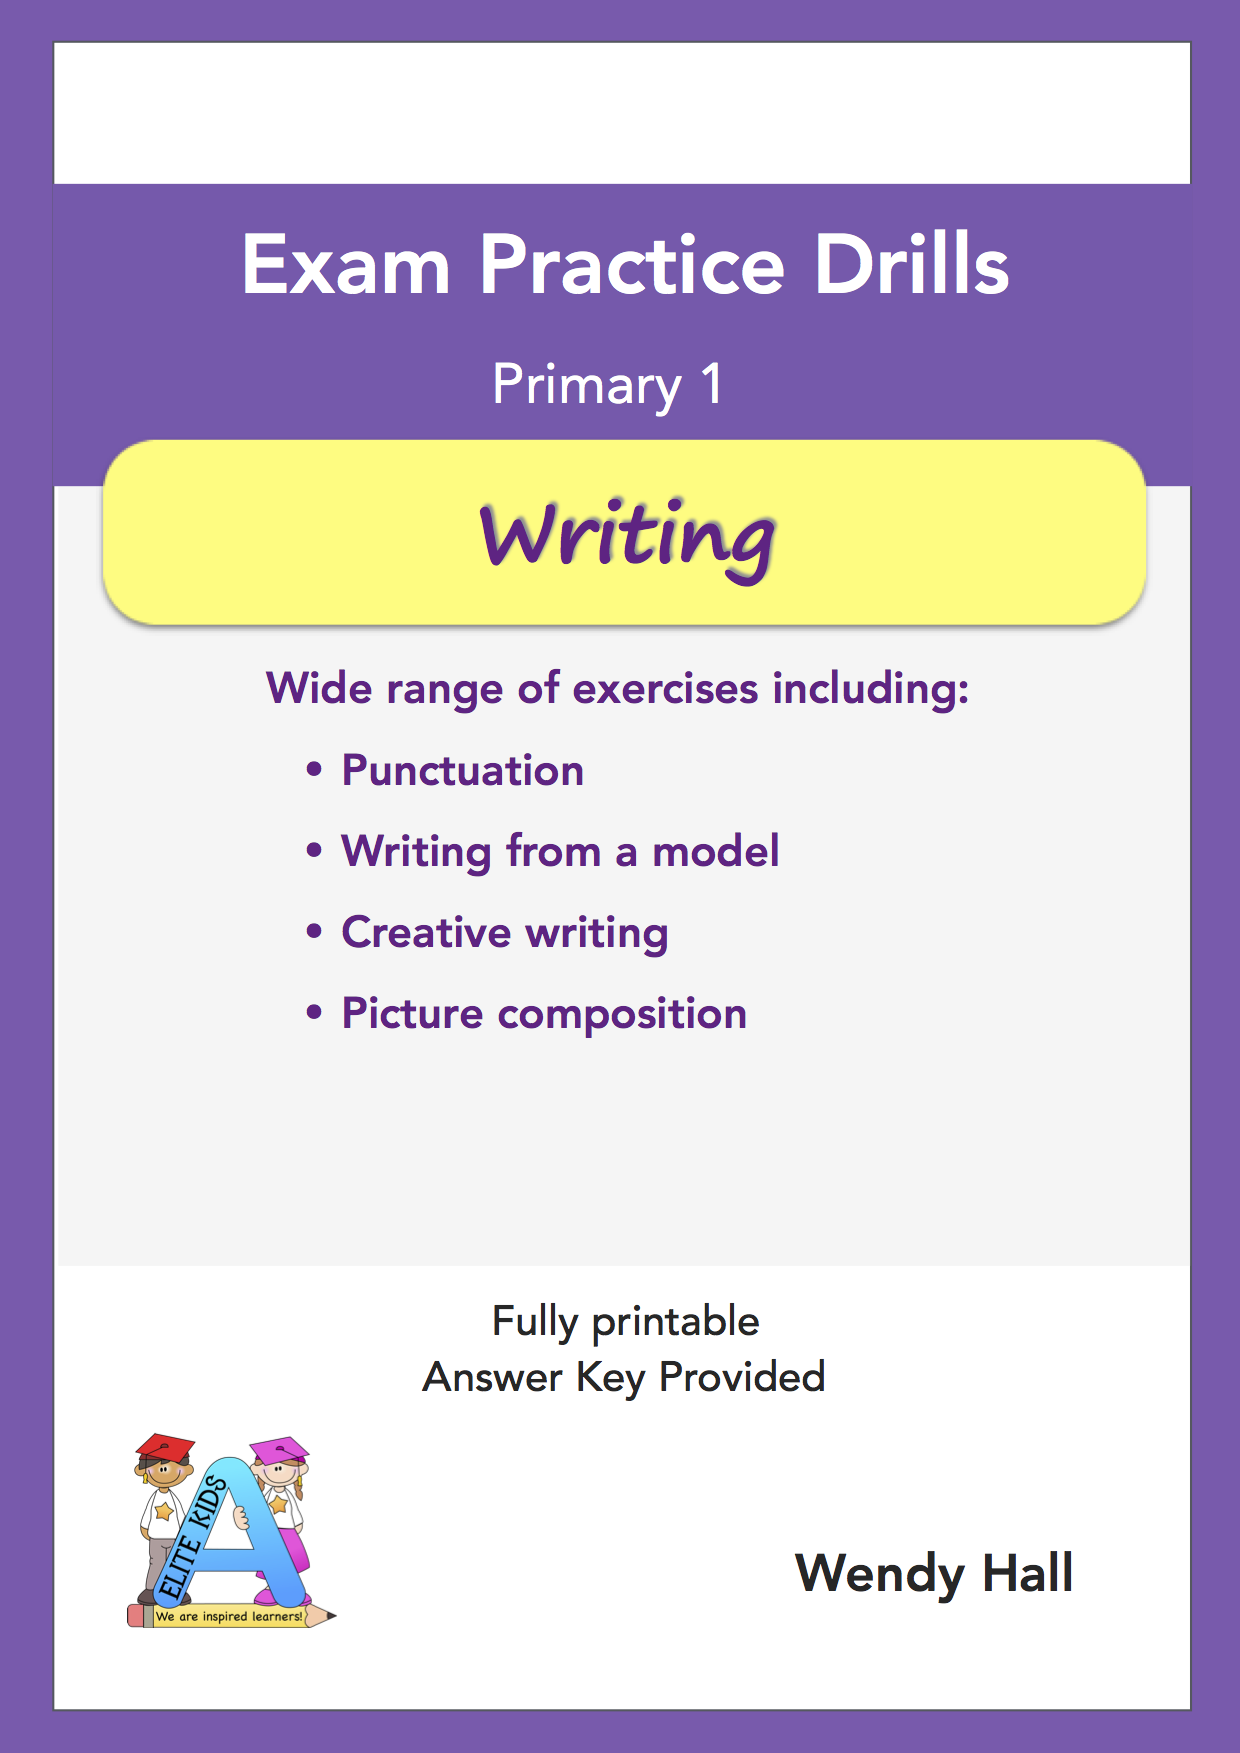 Elite Kids | Exam Practice Drills - Writing